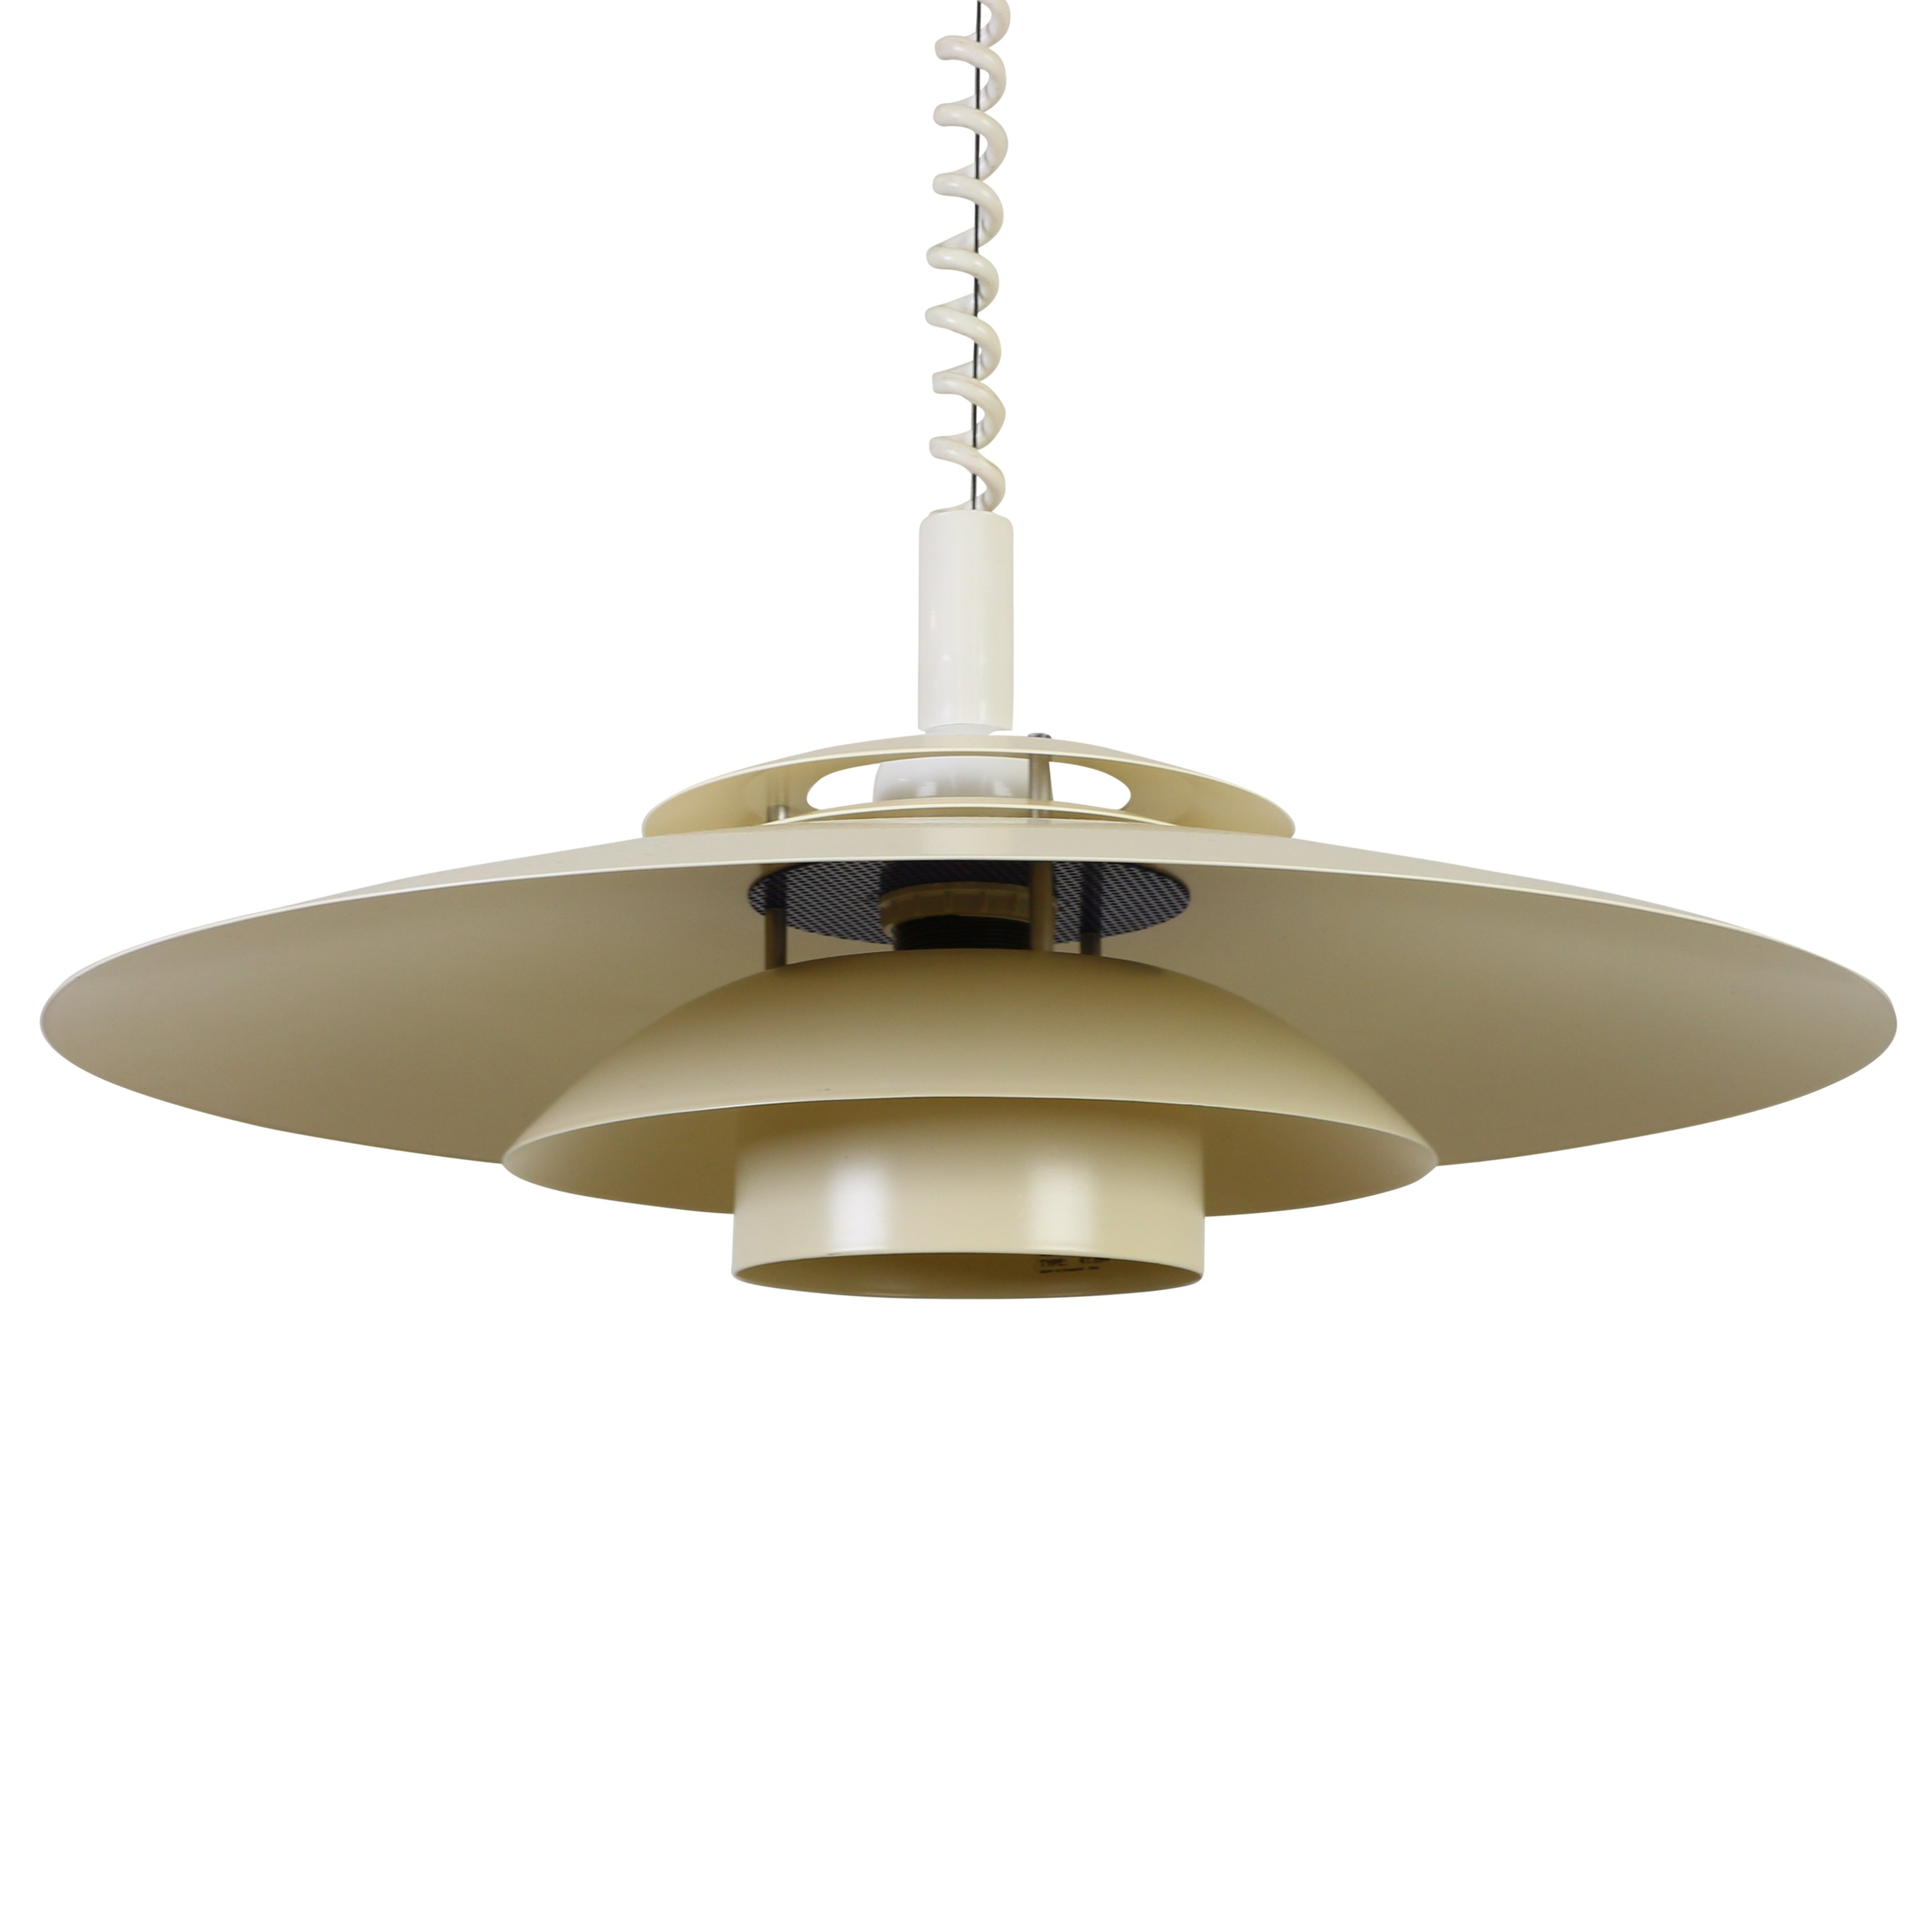 multilayer scandinavian pendant ceiling light with pull down